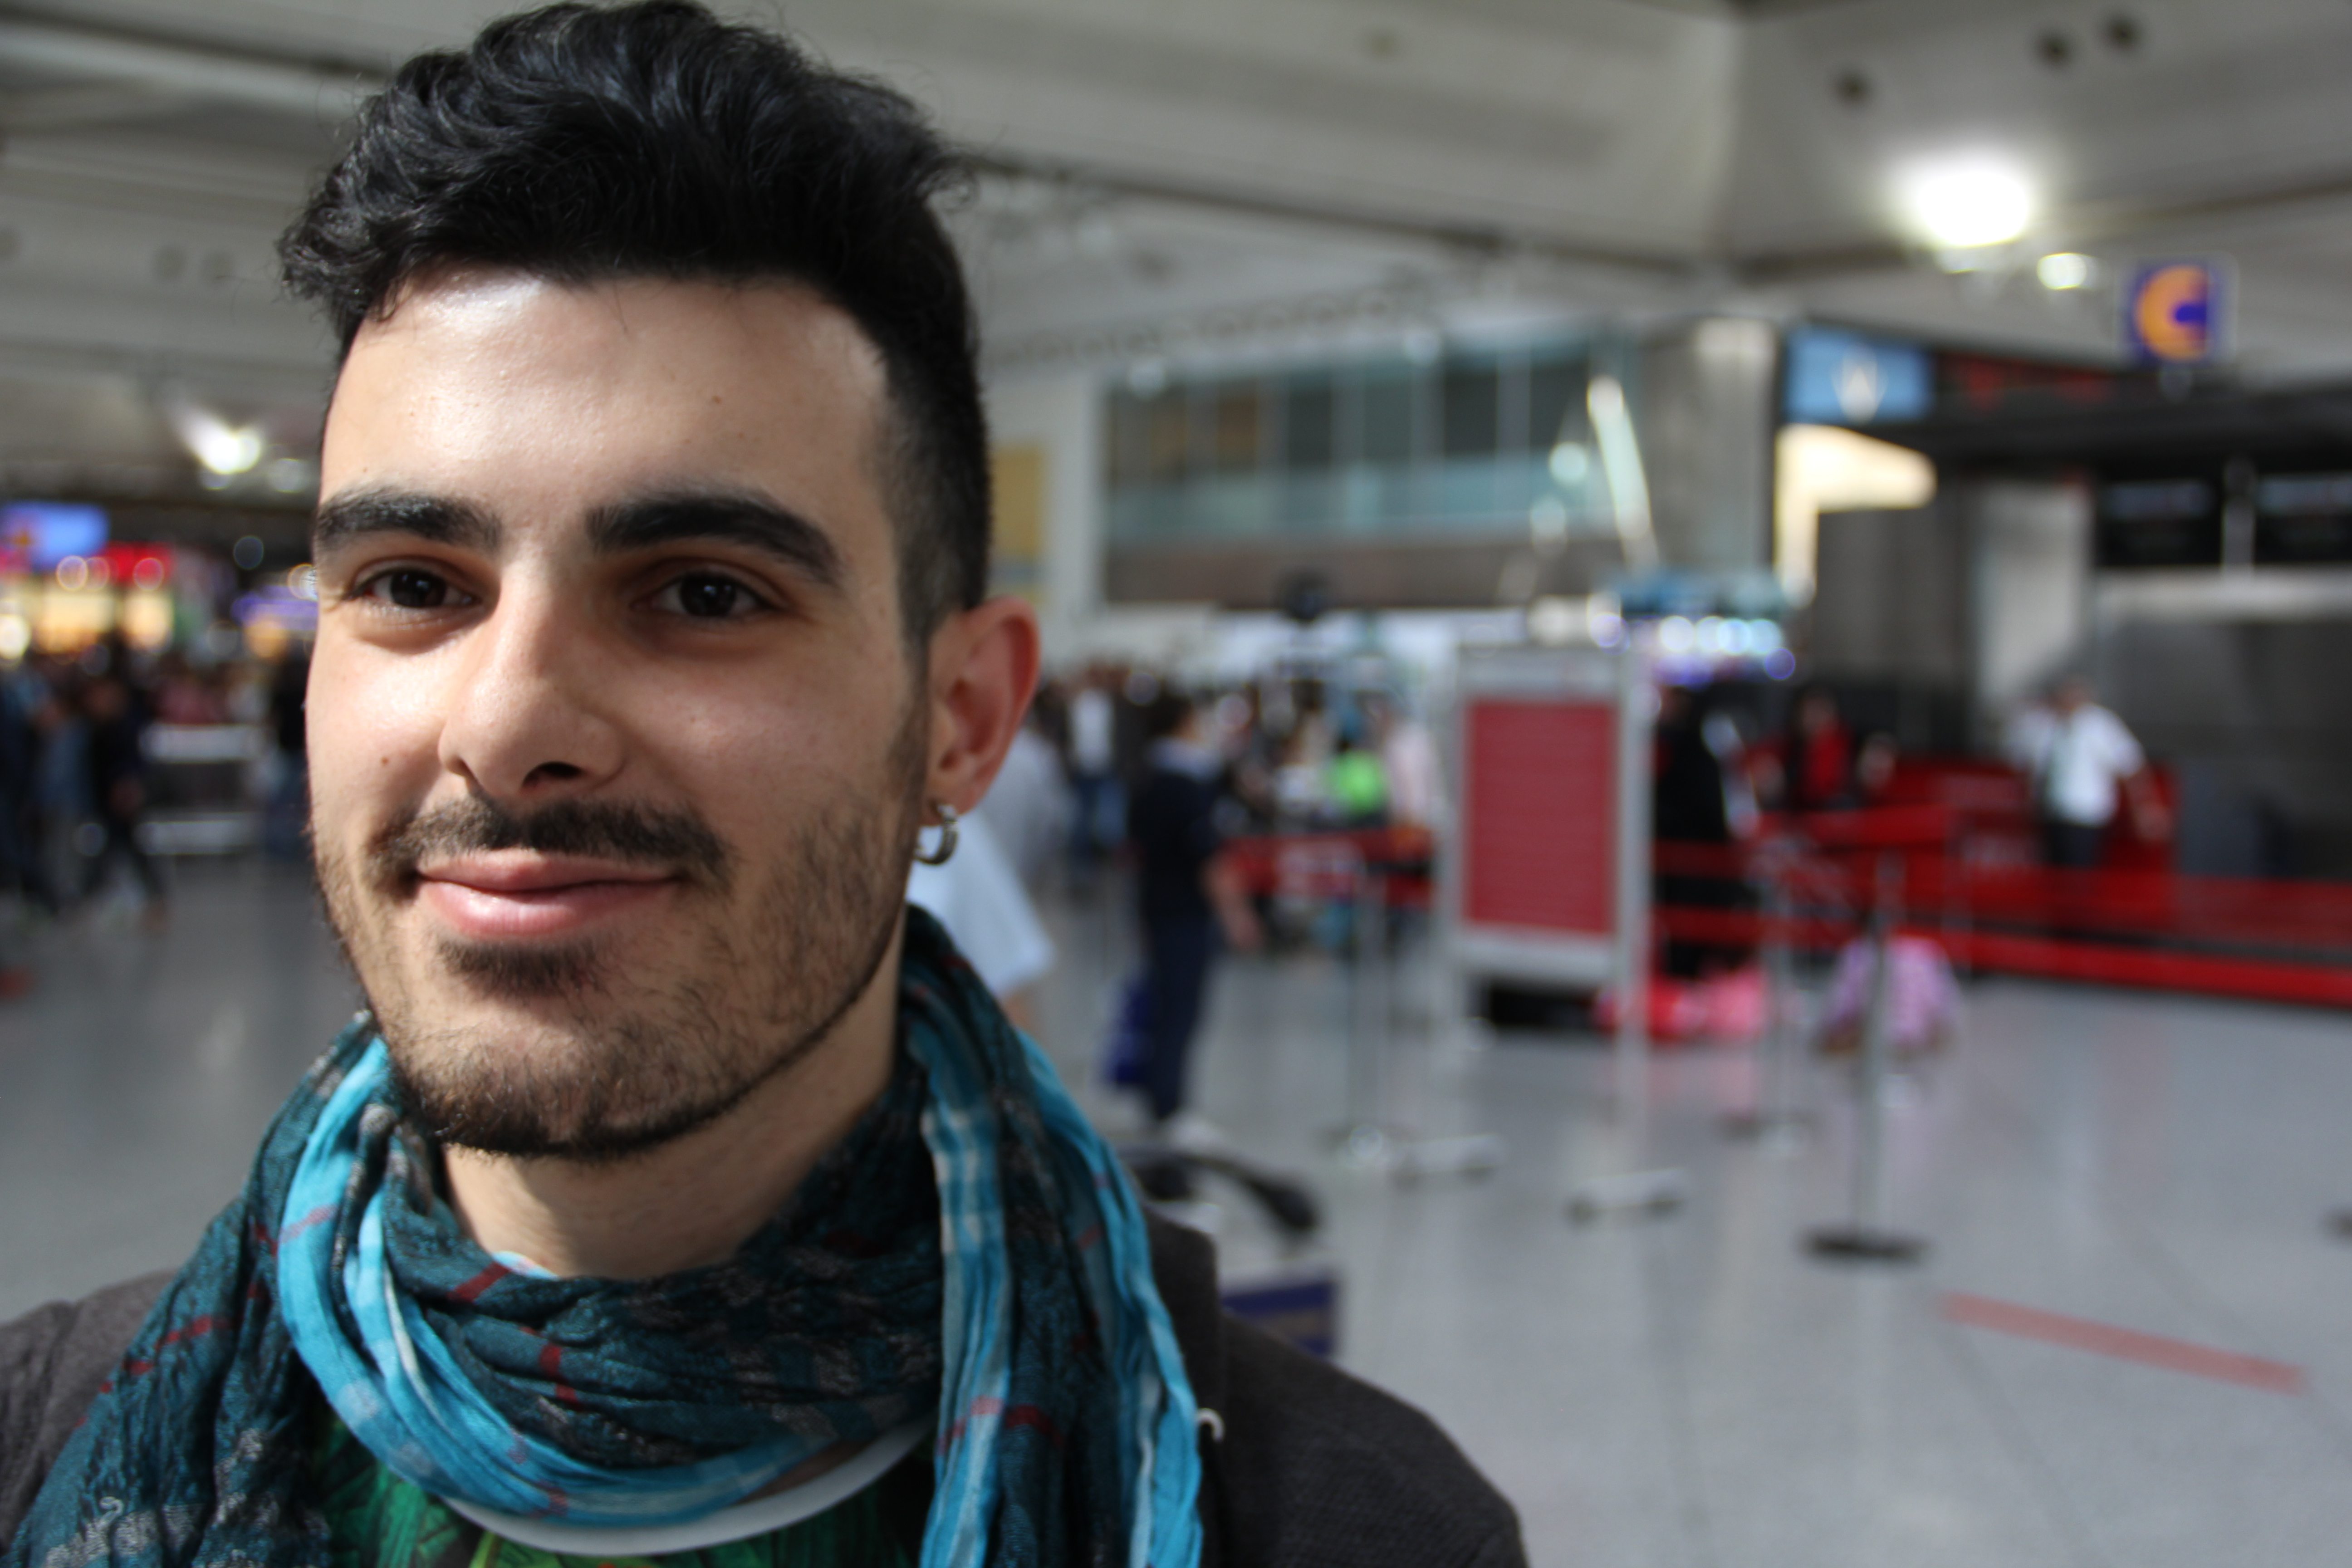 syria single gay men Many gay men there face a double threat: they're being persecuted by the syrian army and by militant groups.